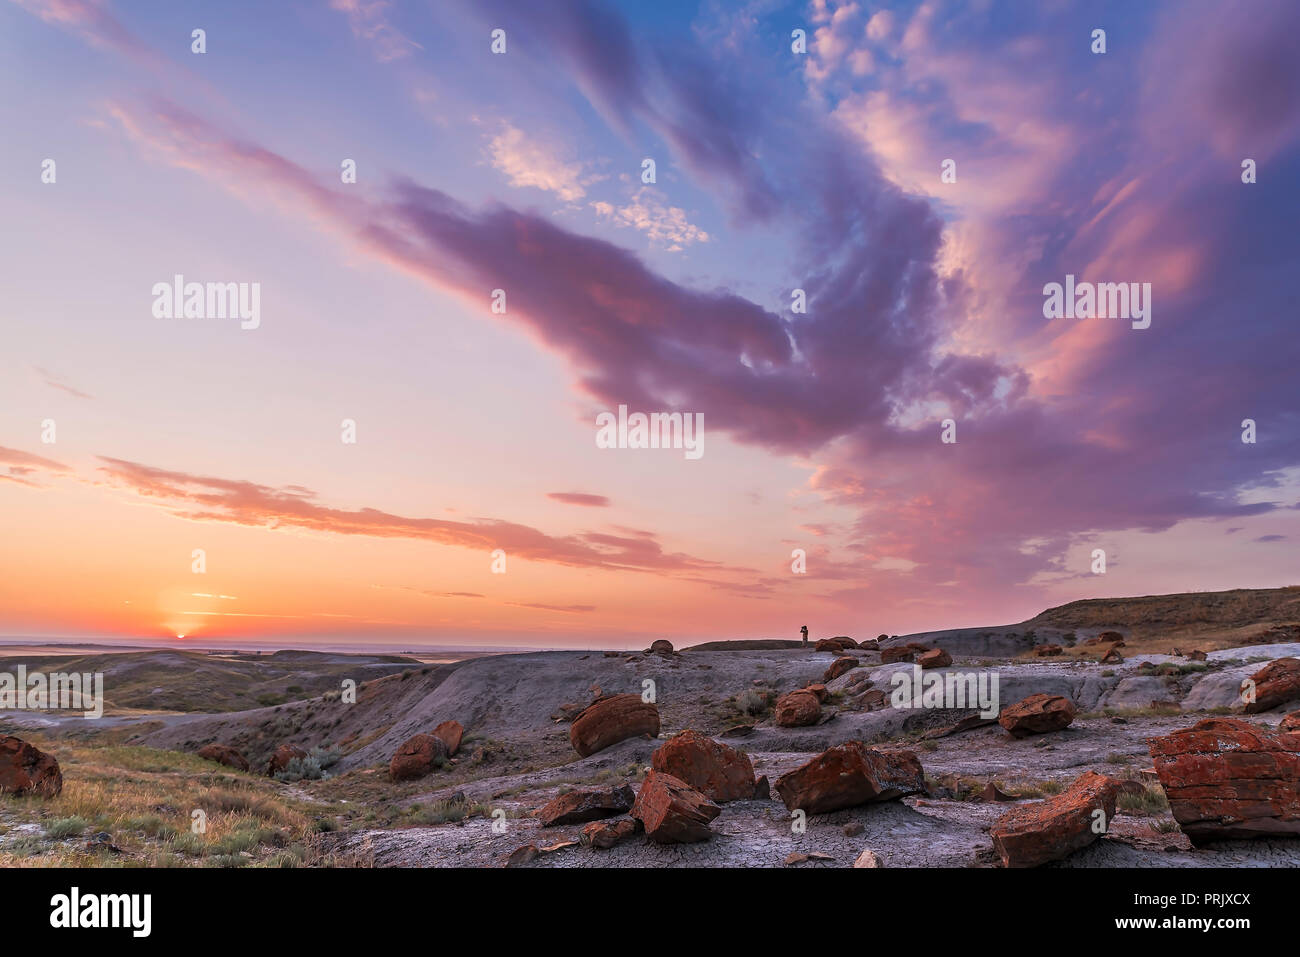 A particularly colourful sunset at the Red Rock Coulee Natural Area in southeast Alberta, with a lone figure silhouetted against the sky.  This is a 7 Stock Photo